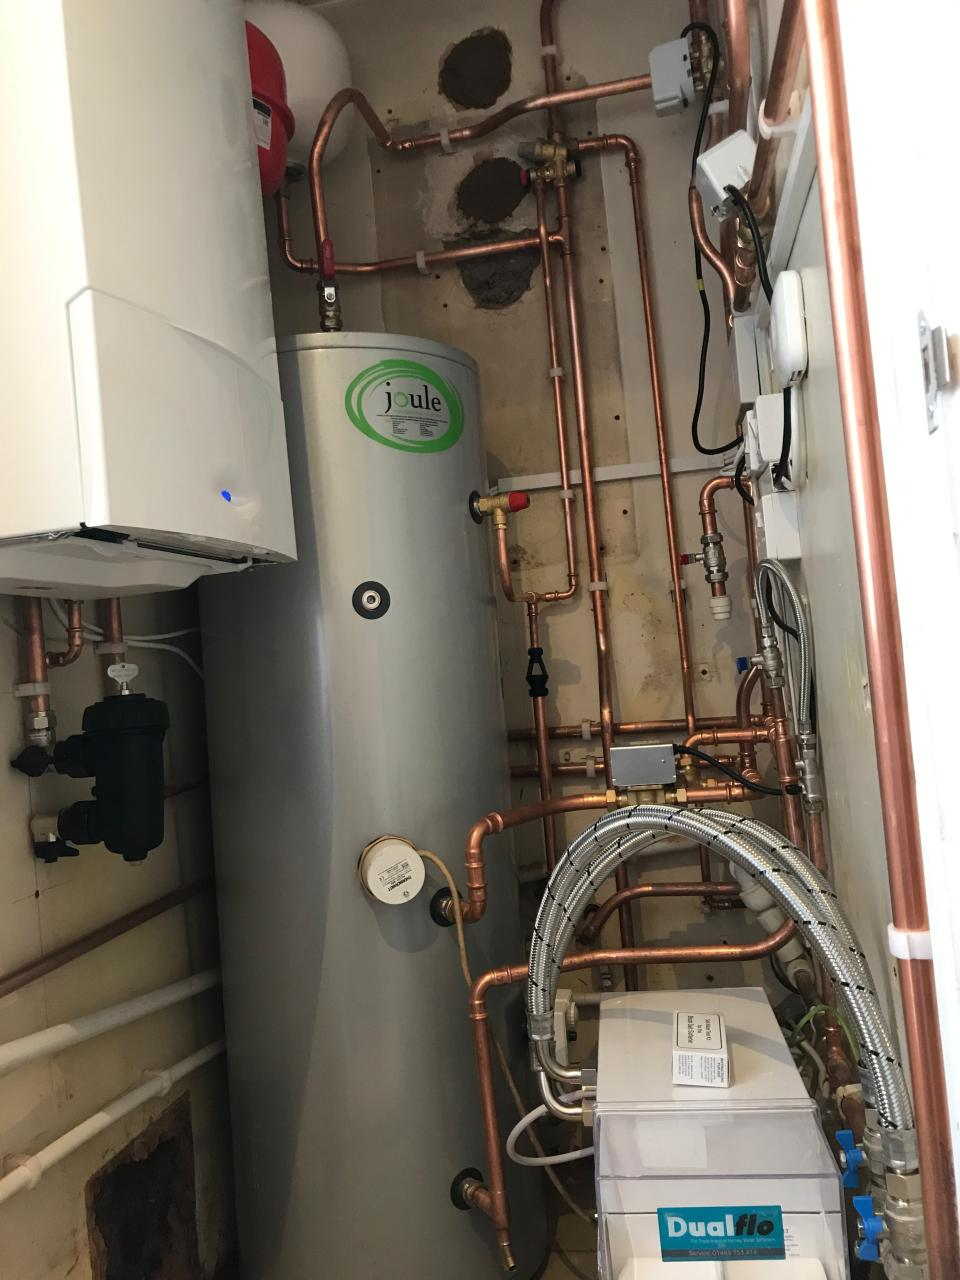 Replacement of HE boiler and Mega-flo after